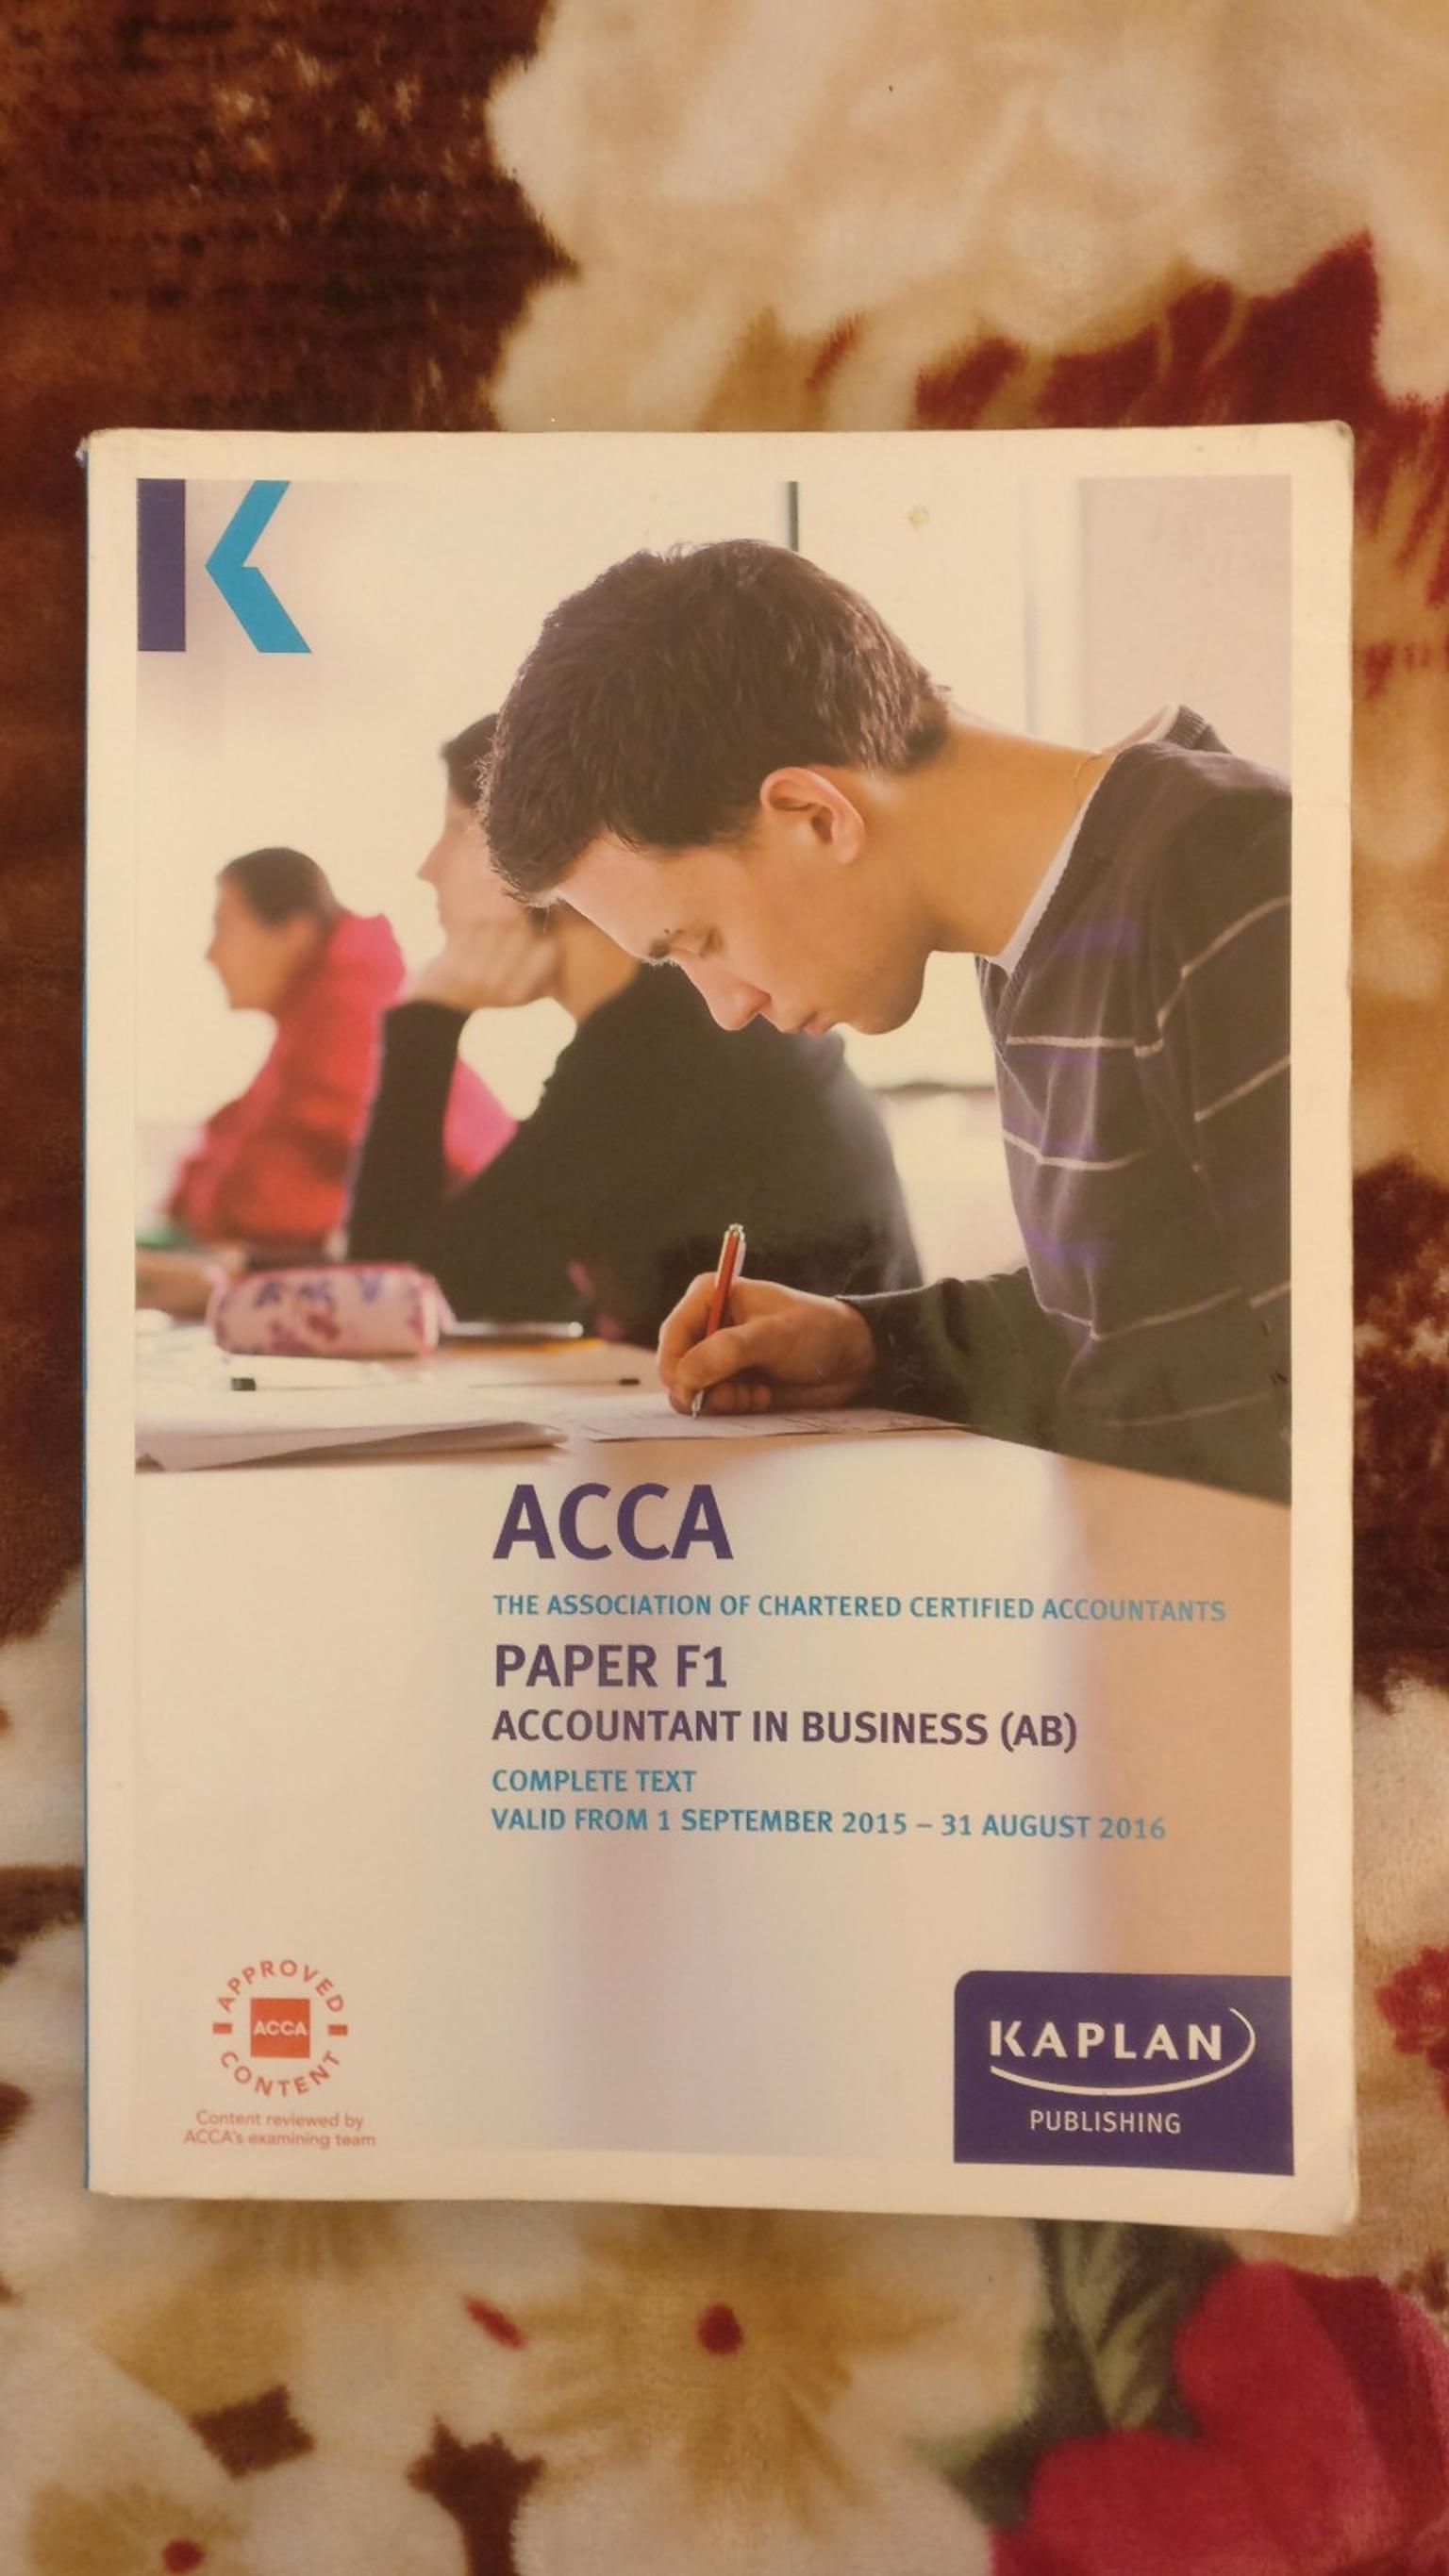 ACCA PAPER F1 ACCOUNTANT IN BUSINESS